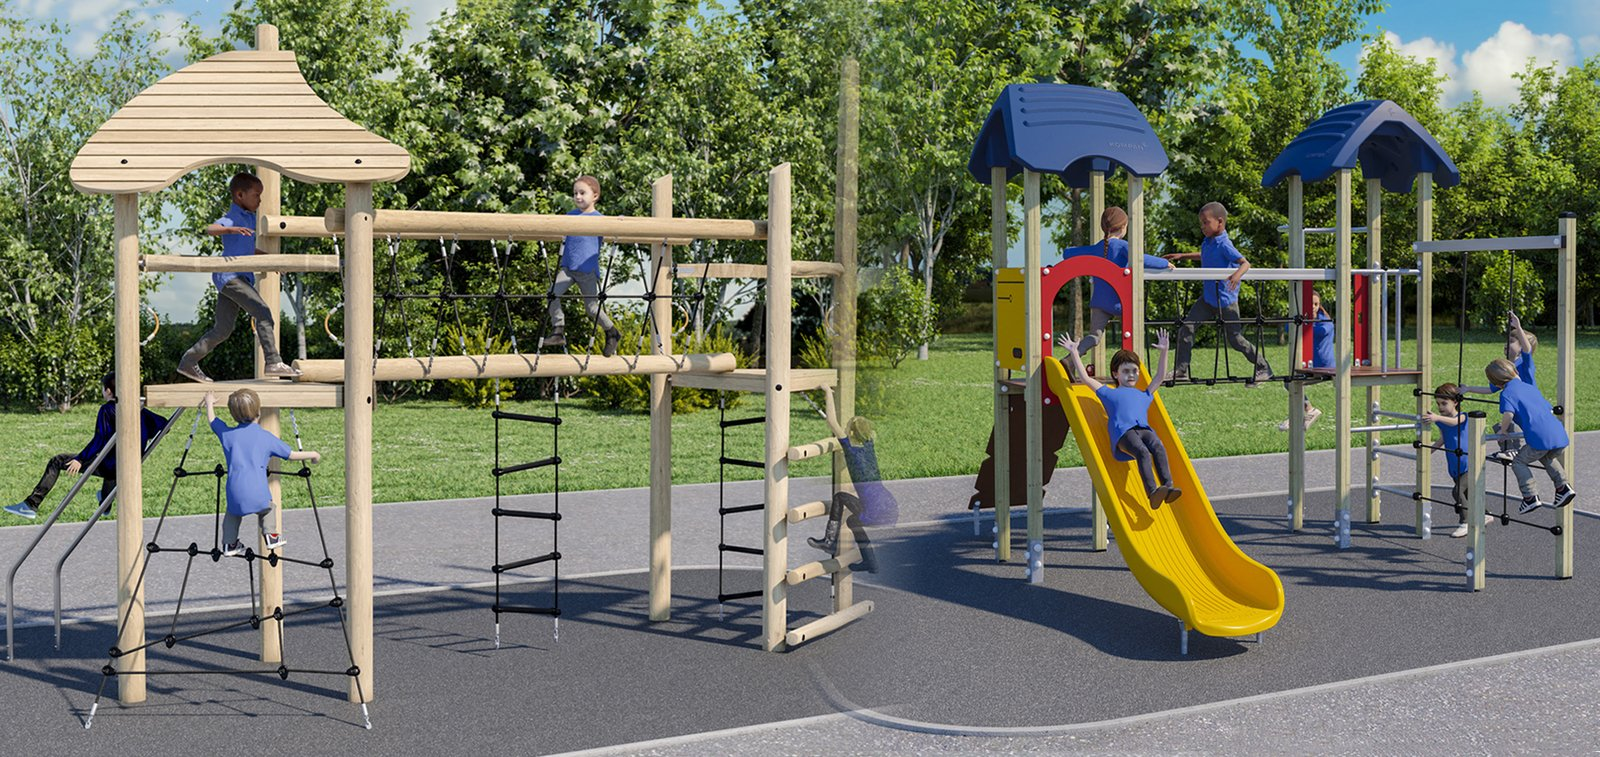 Kompan Tower Play Units Offer